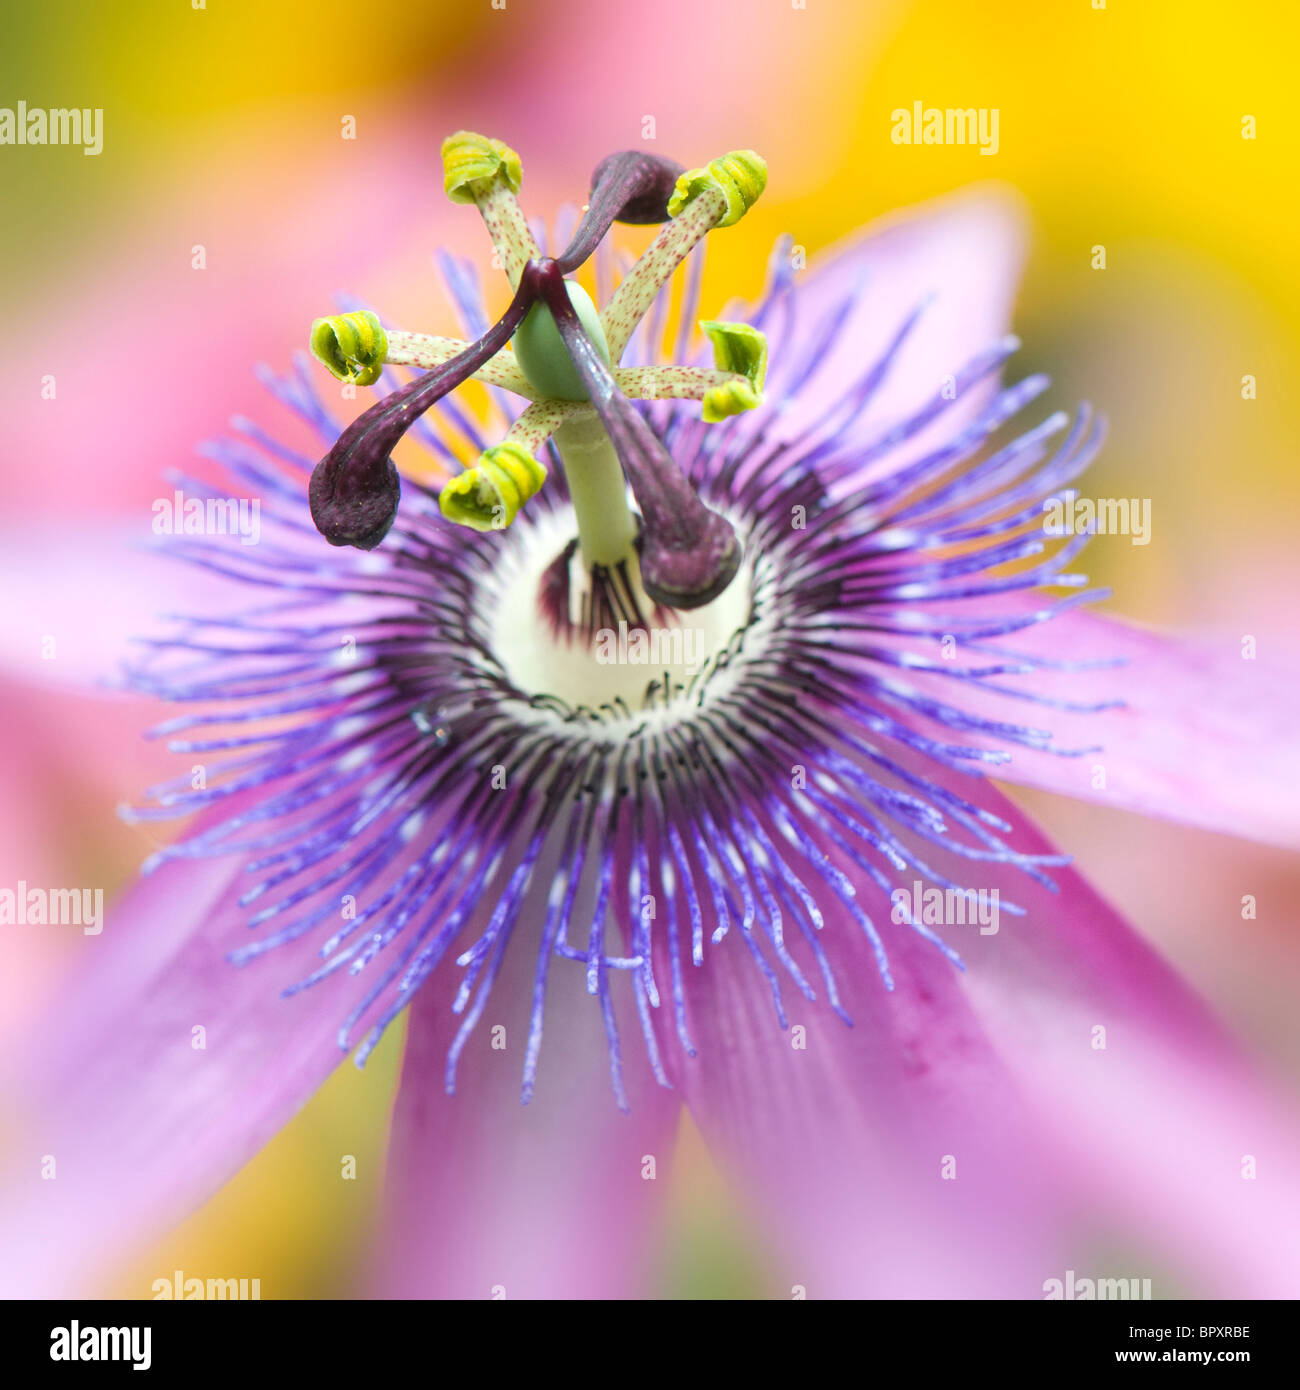 Close-up macro image of a single flowerhead from the Passion Flower - Passiflora 'Lavender Lady' - Stock Image